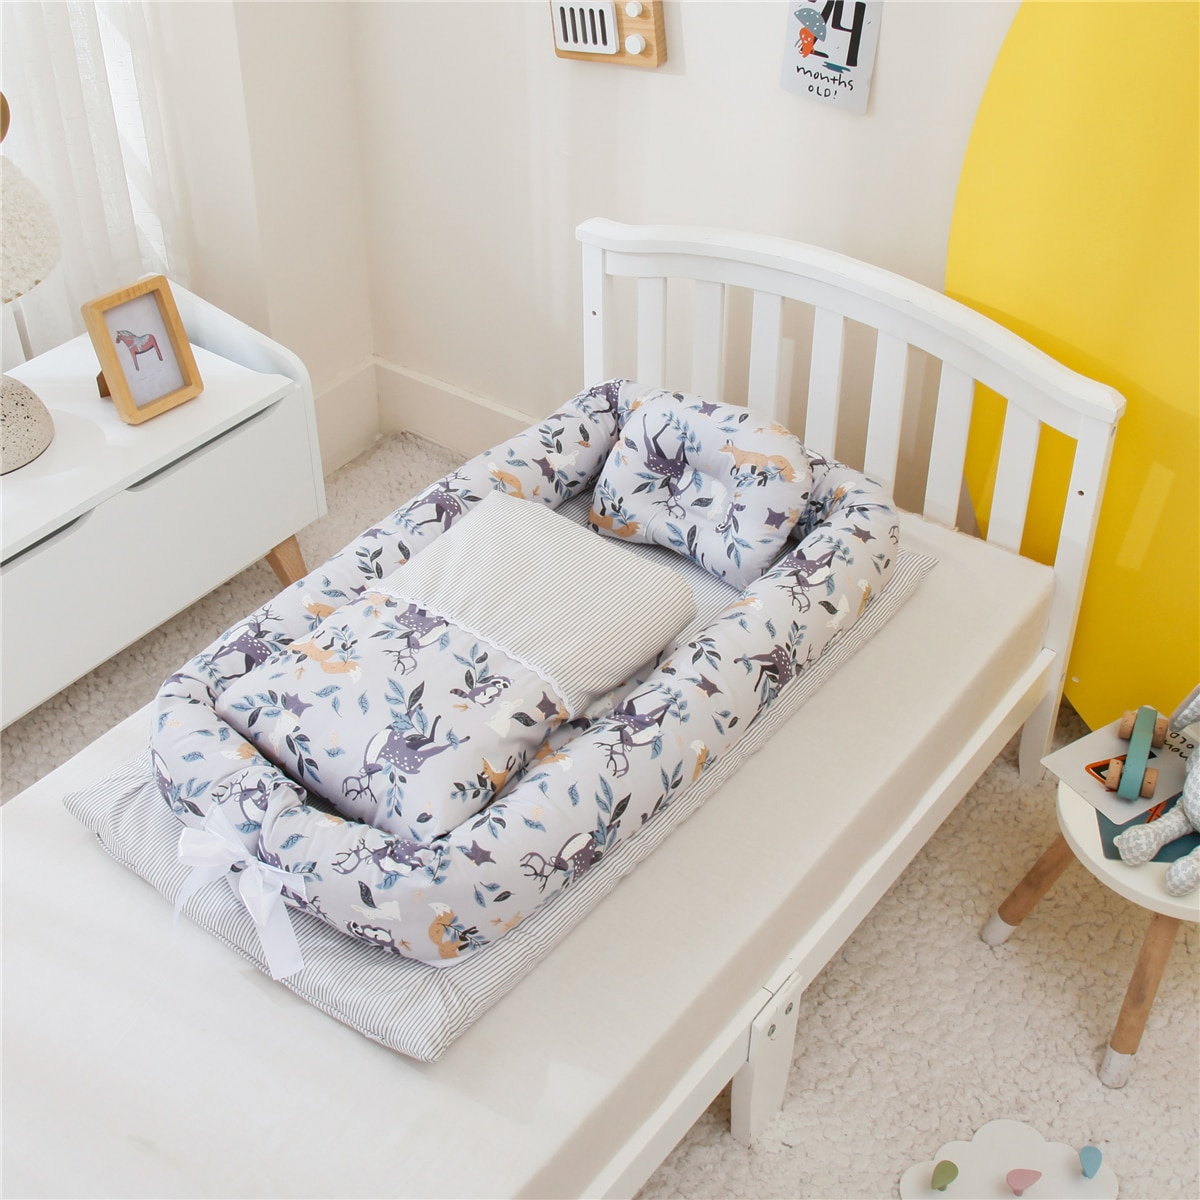 3pcs/set Portable Baby Nest Bed with Quilt Bedding Set Cotton Crib for Newborn Babynest Baby Nursery Carrycot Co Sleeper Bed